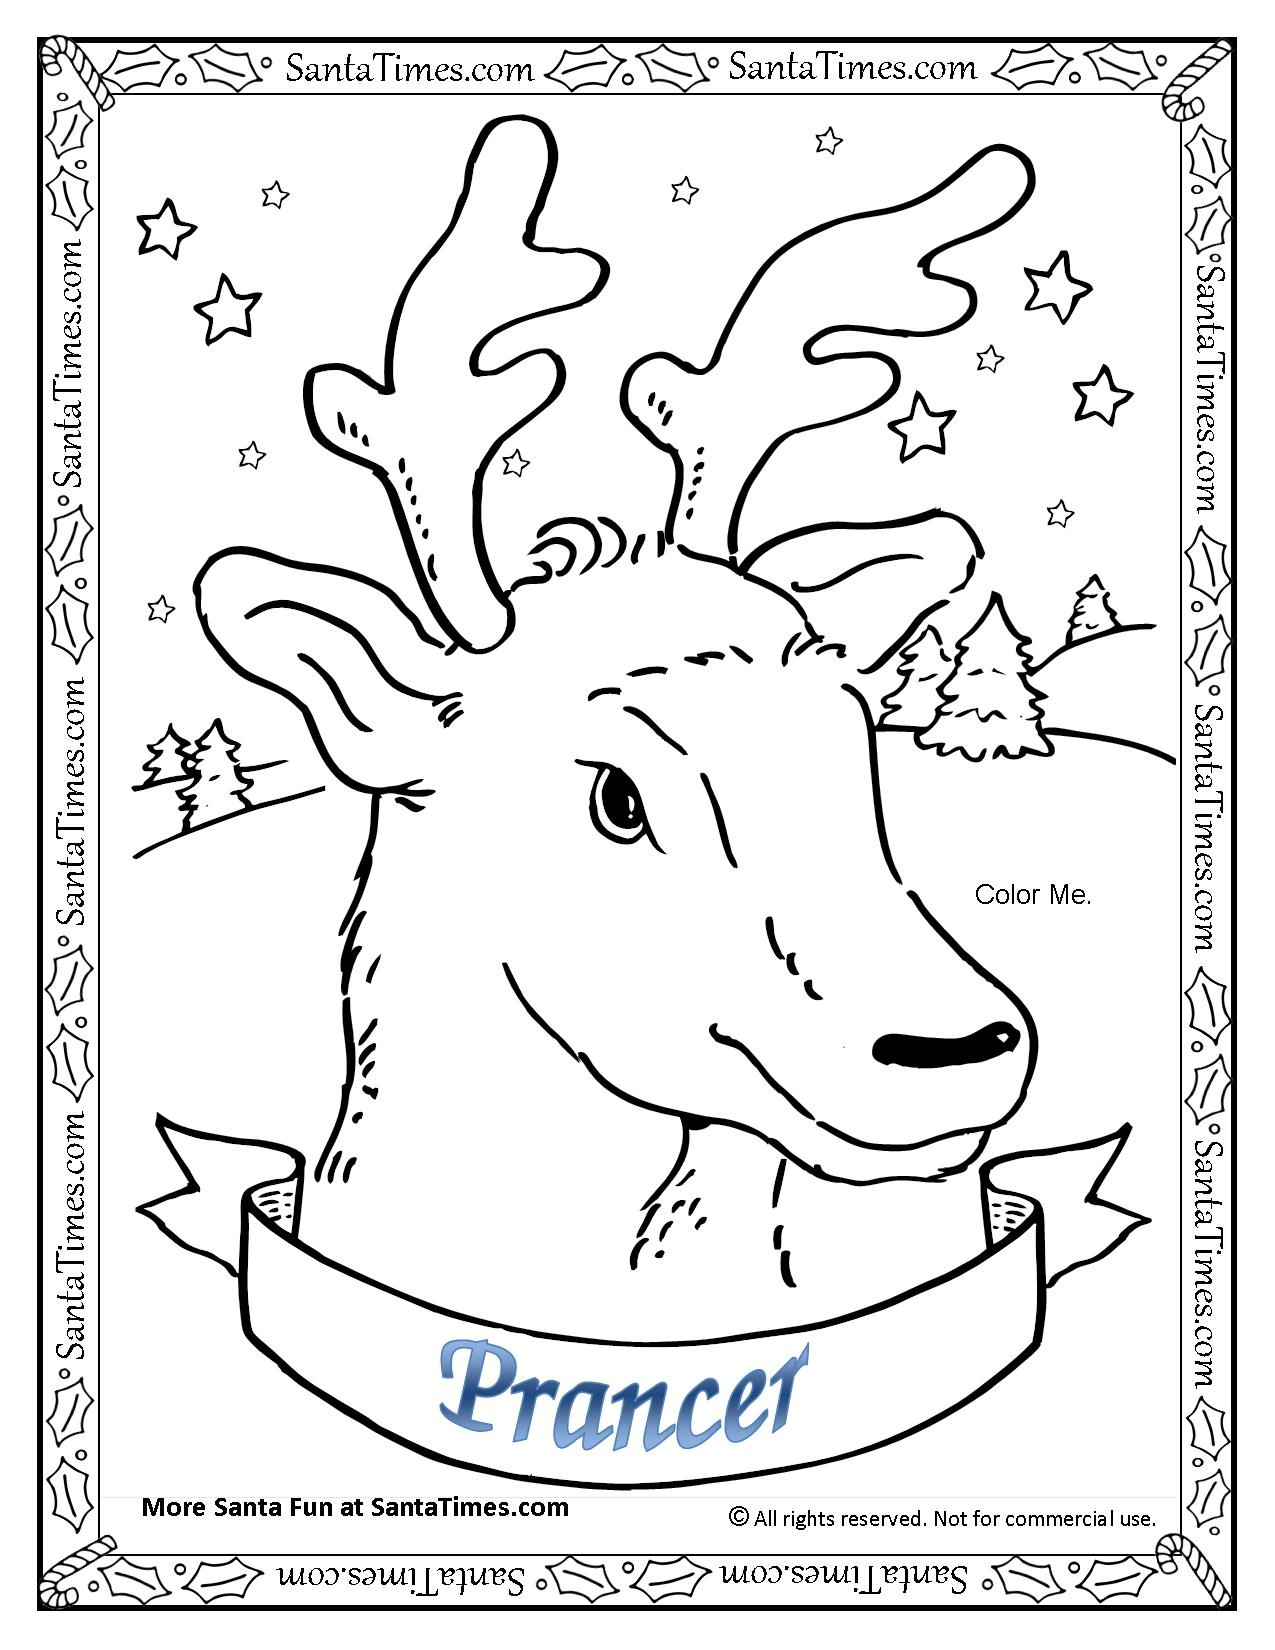 Prancer the reindeer for Santa and reindeer coloring pages printable